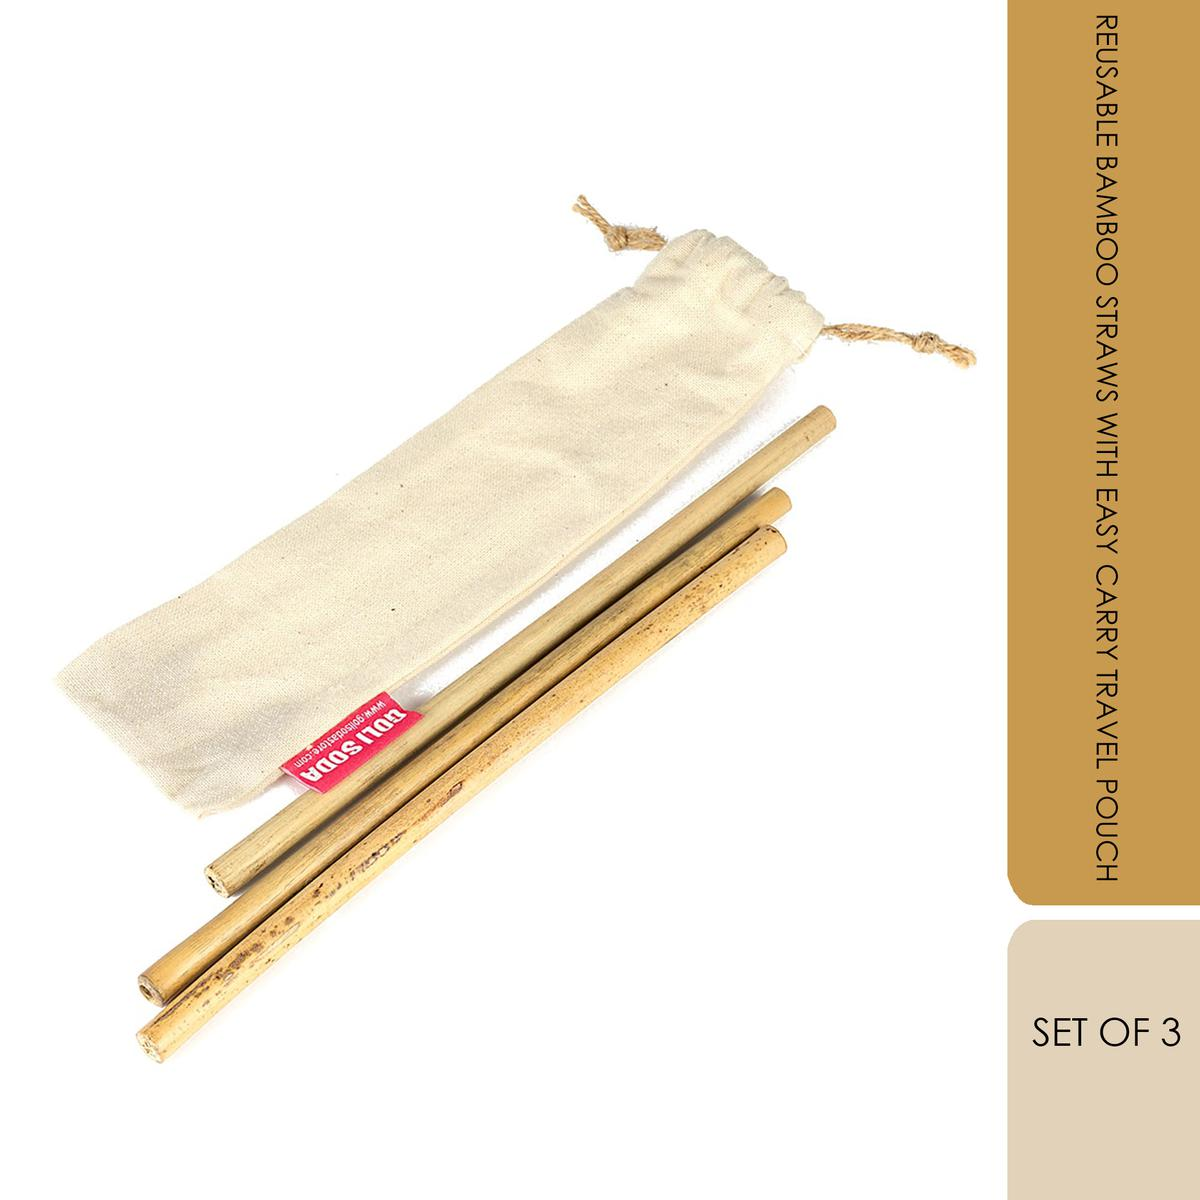 GOLI SODA Reusable Bamboo Straws With Easy Carry Travel Pouch (Set of 3)